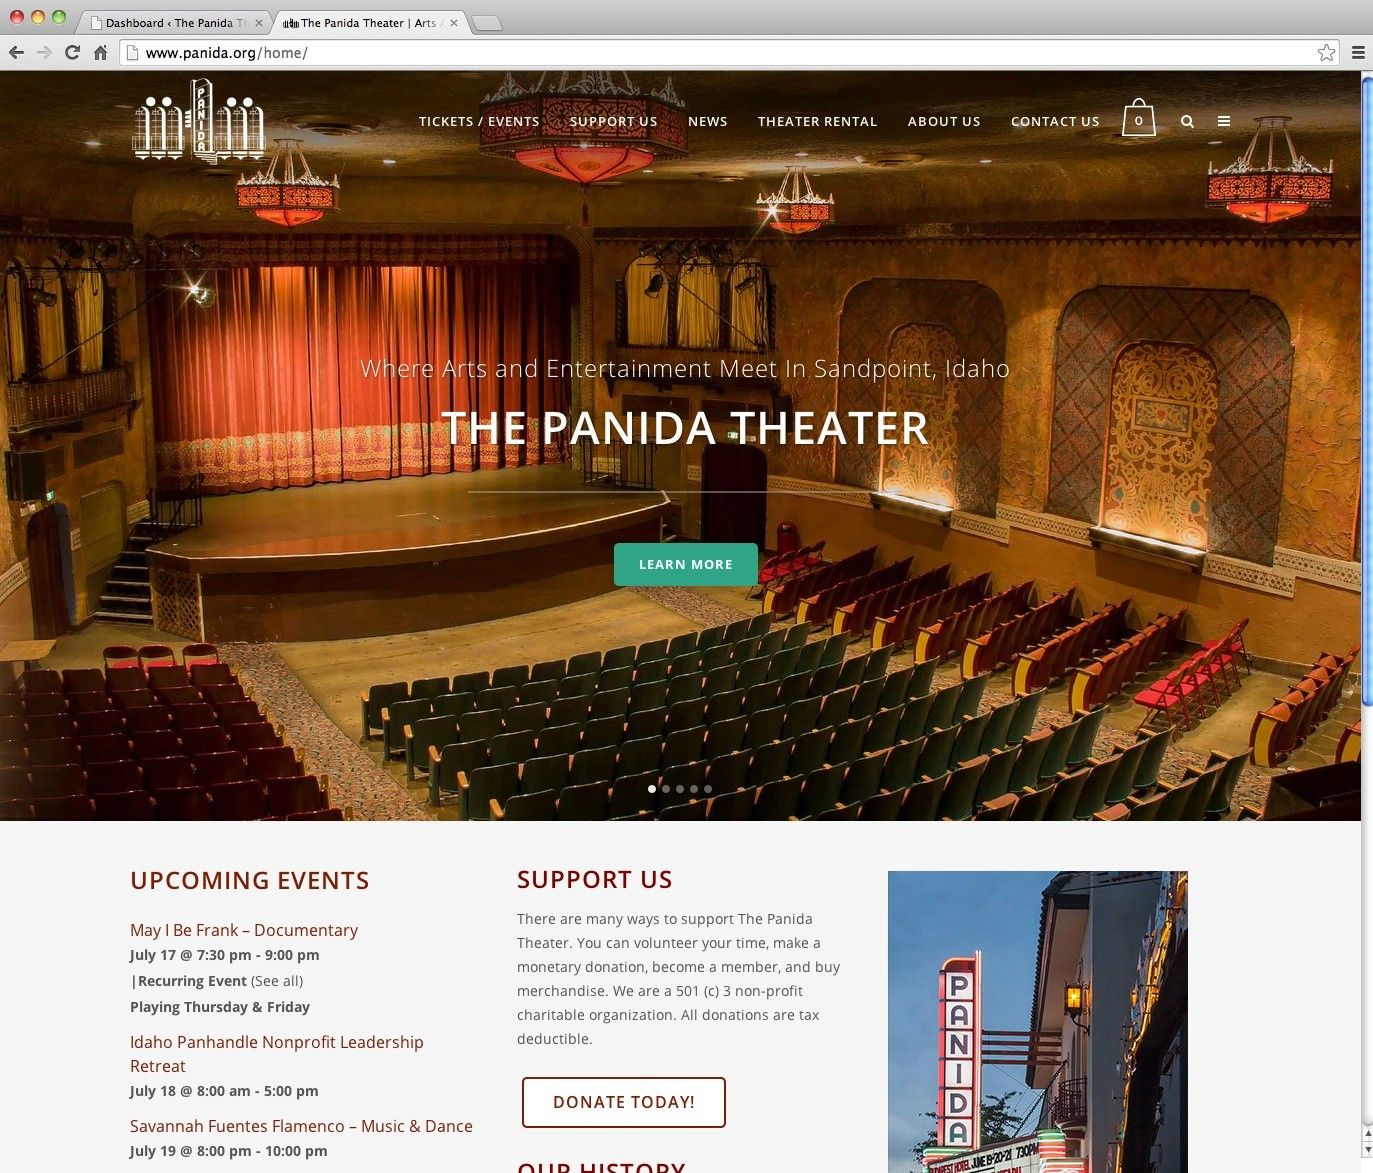 We introduced a responsive website design with ticket sales and secure credit card processing with easy checkout and wide, beautiful slideshows of upcoming events. We re-organized and prioritized the website information to be easier for viewers to see upcoming events as well.